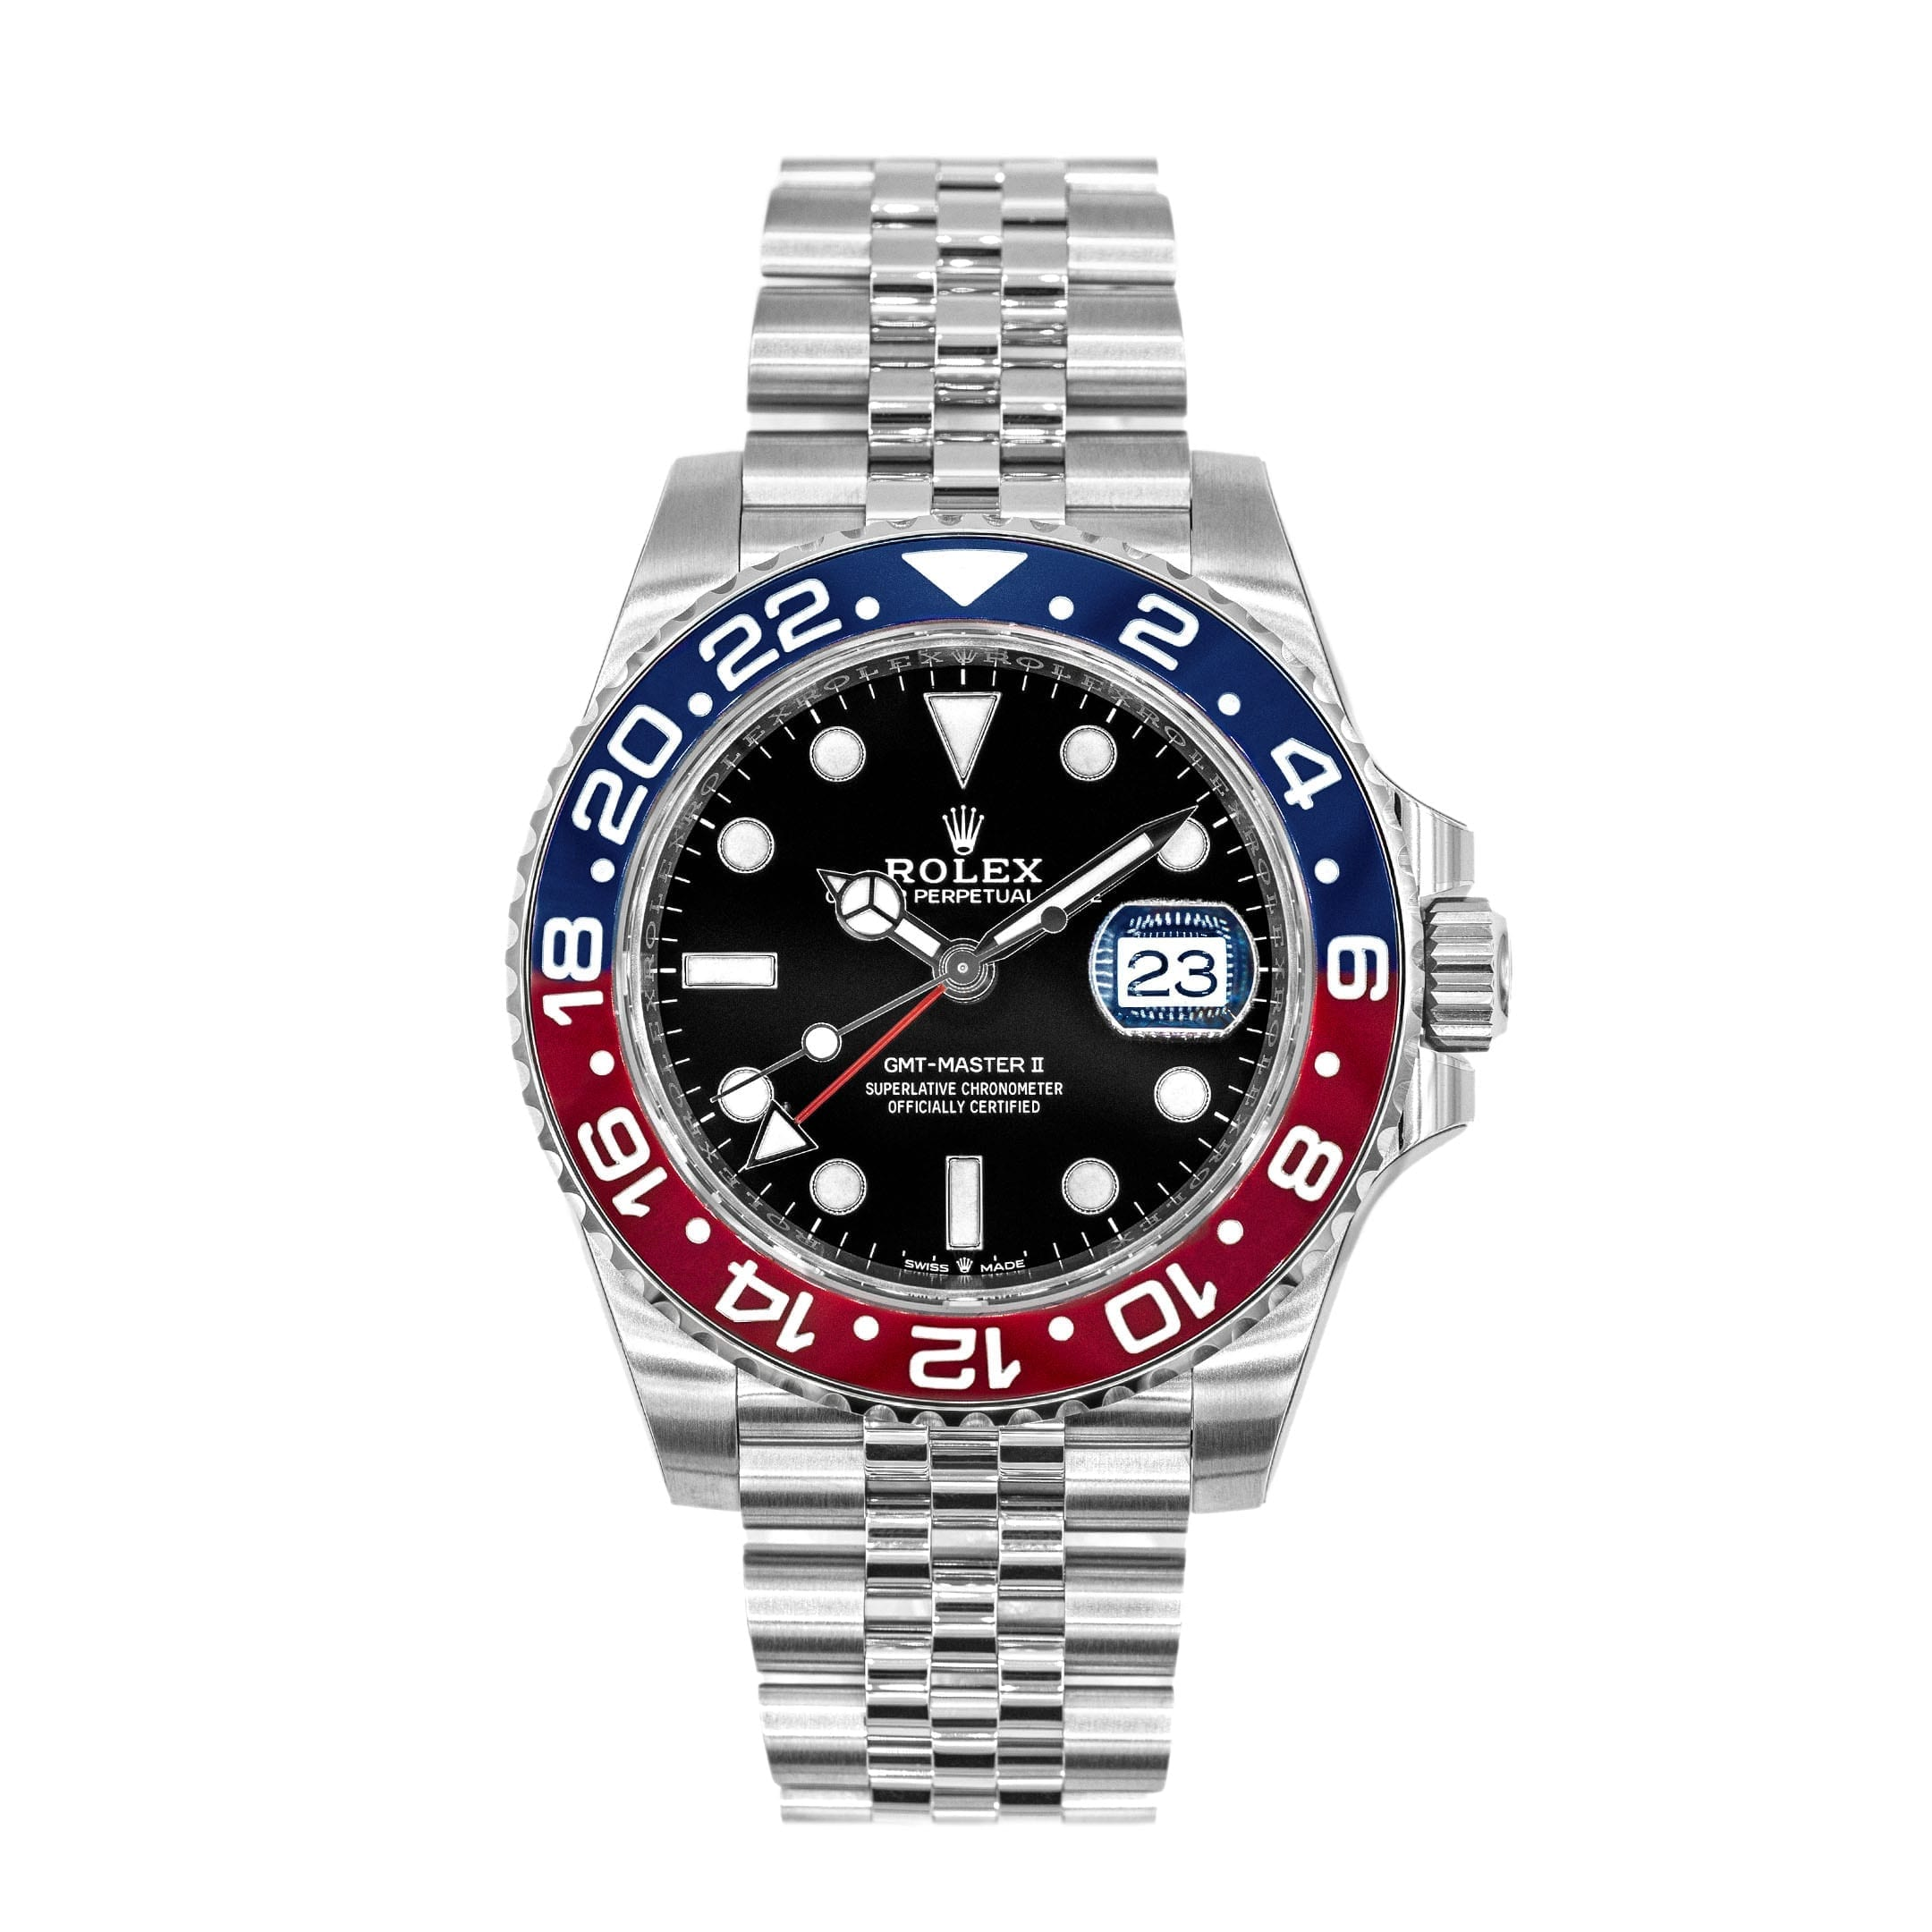 Rolex GMT-Master II 'Pepsi' 2020 | Watch Trading Co